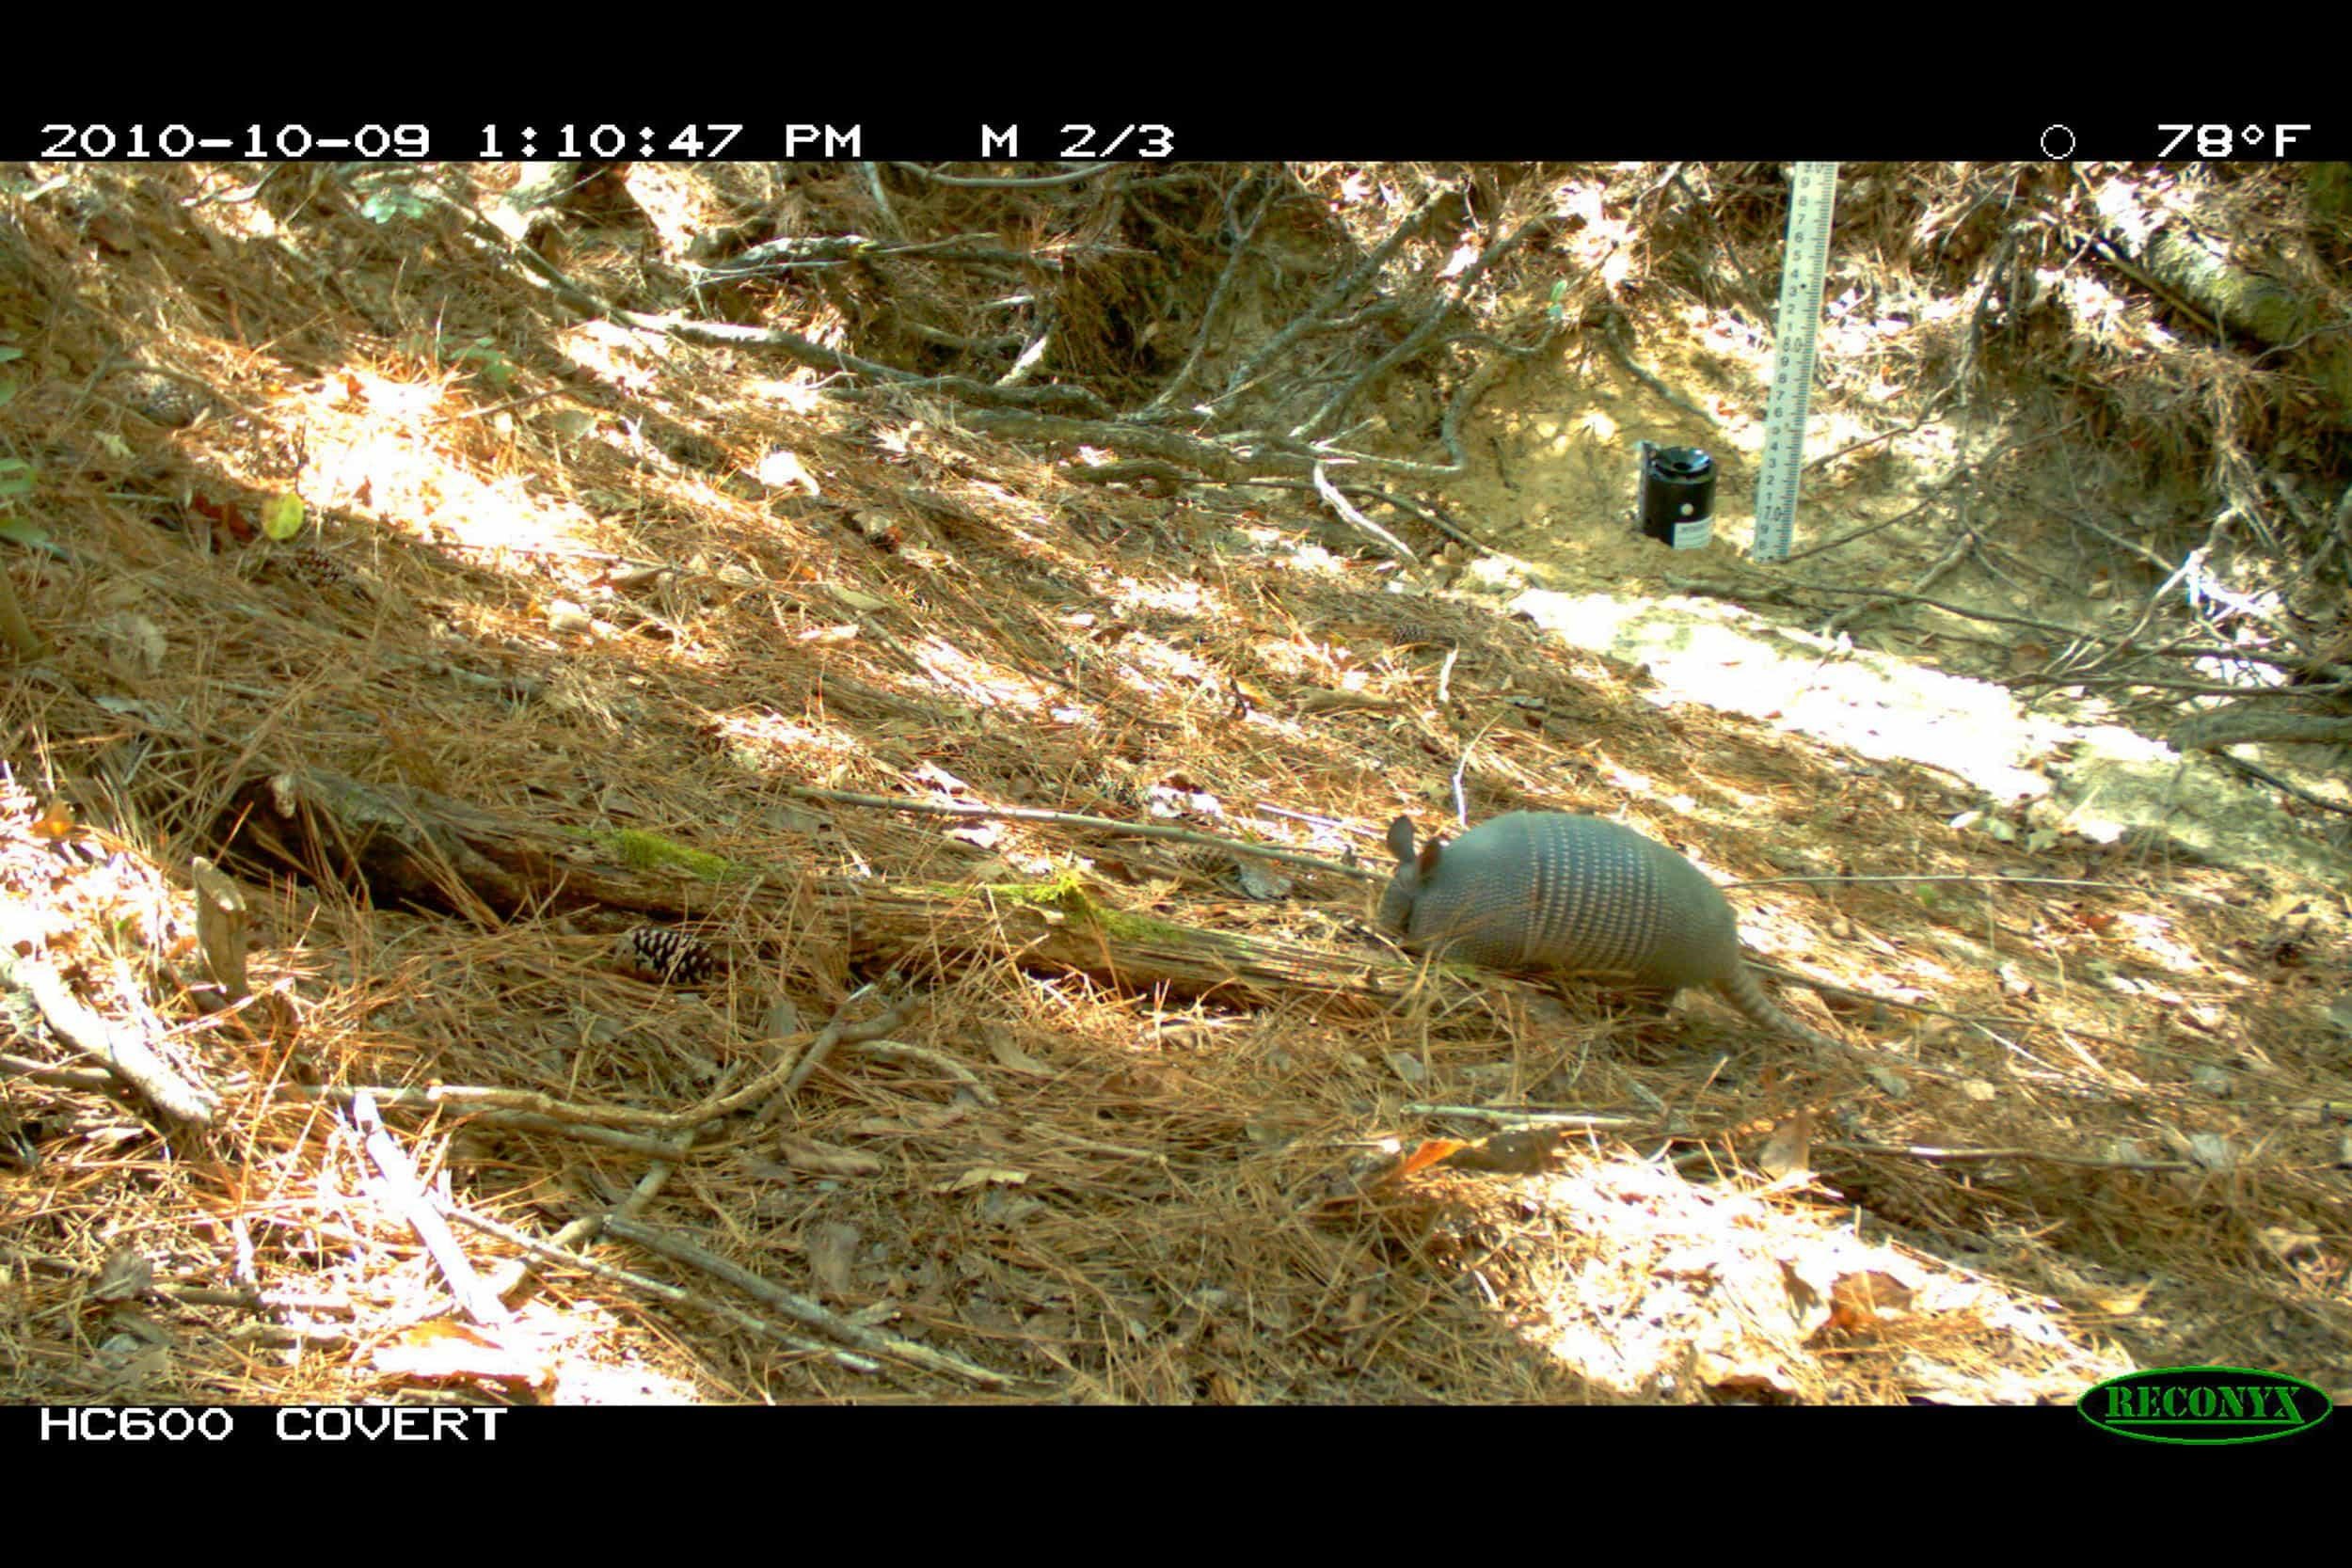 Nine-banded armadillo (Dasypus novemcinctus) - Images captured with a game camera show that the wooded area within the development site provided habitat that supports numerous mammalian and avian wildlife.